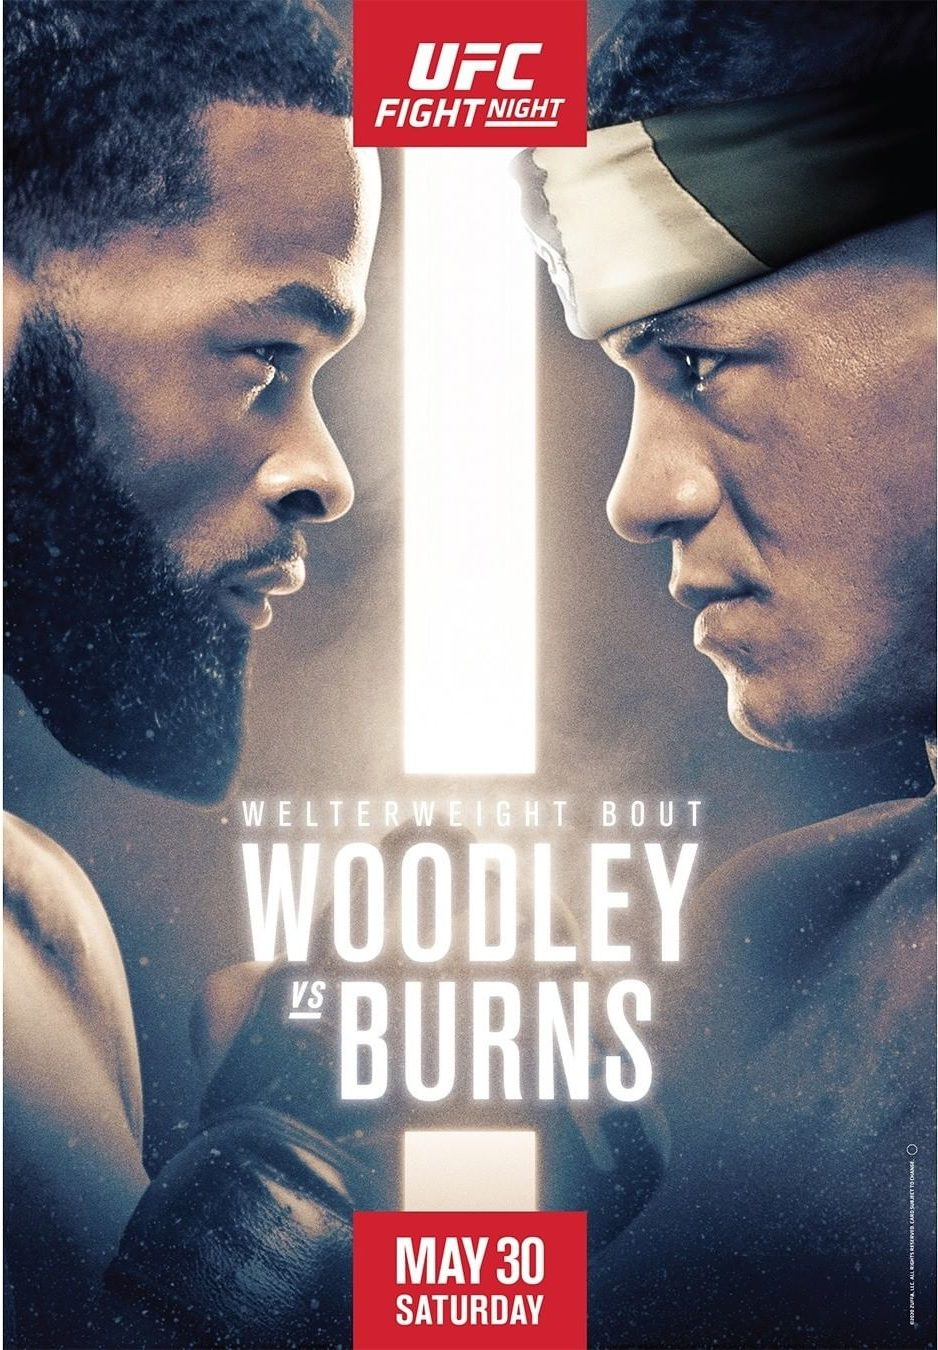 Woodly vs Burns